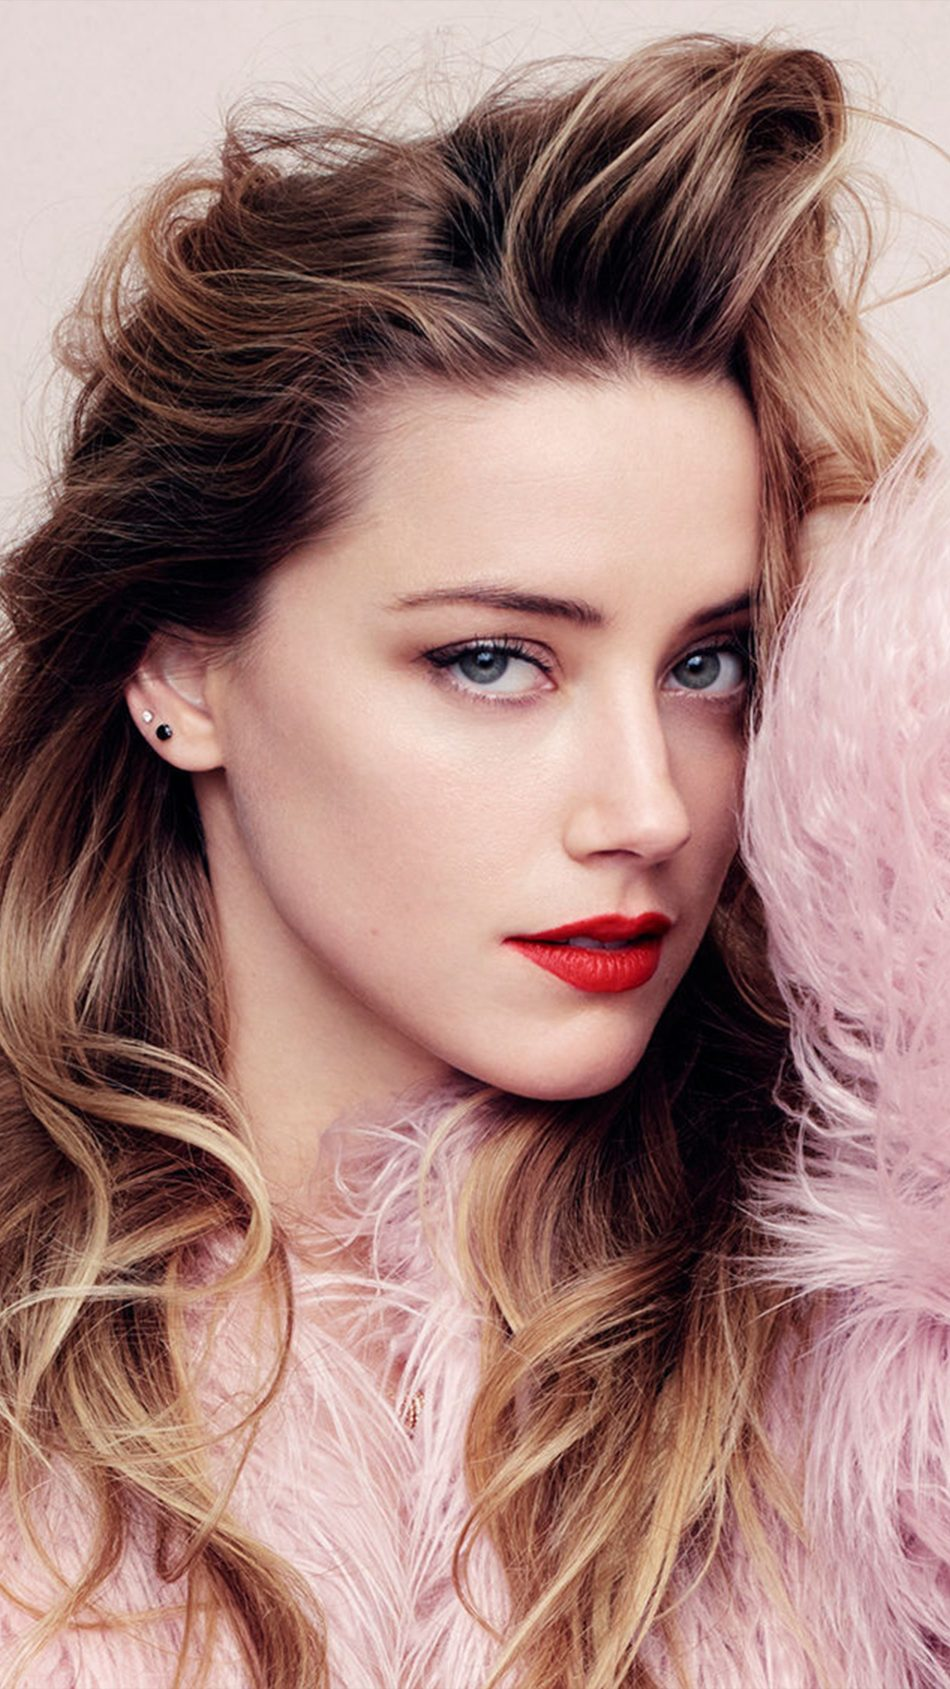 Gorgeous Amber Heard 4K Ultra HD Mobile Wallpaper